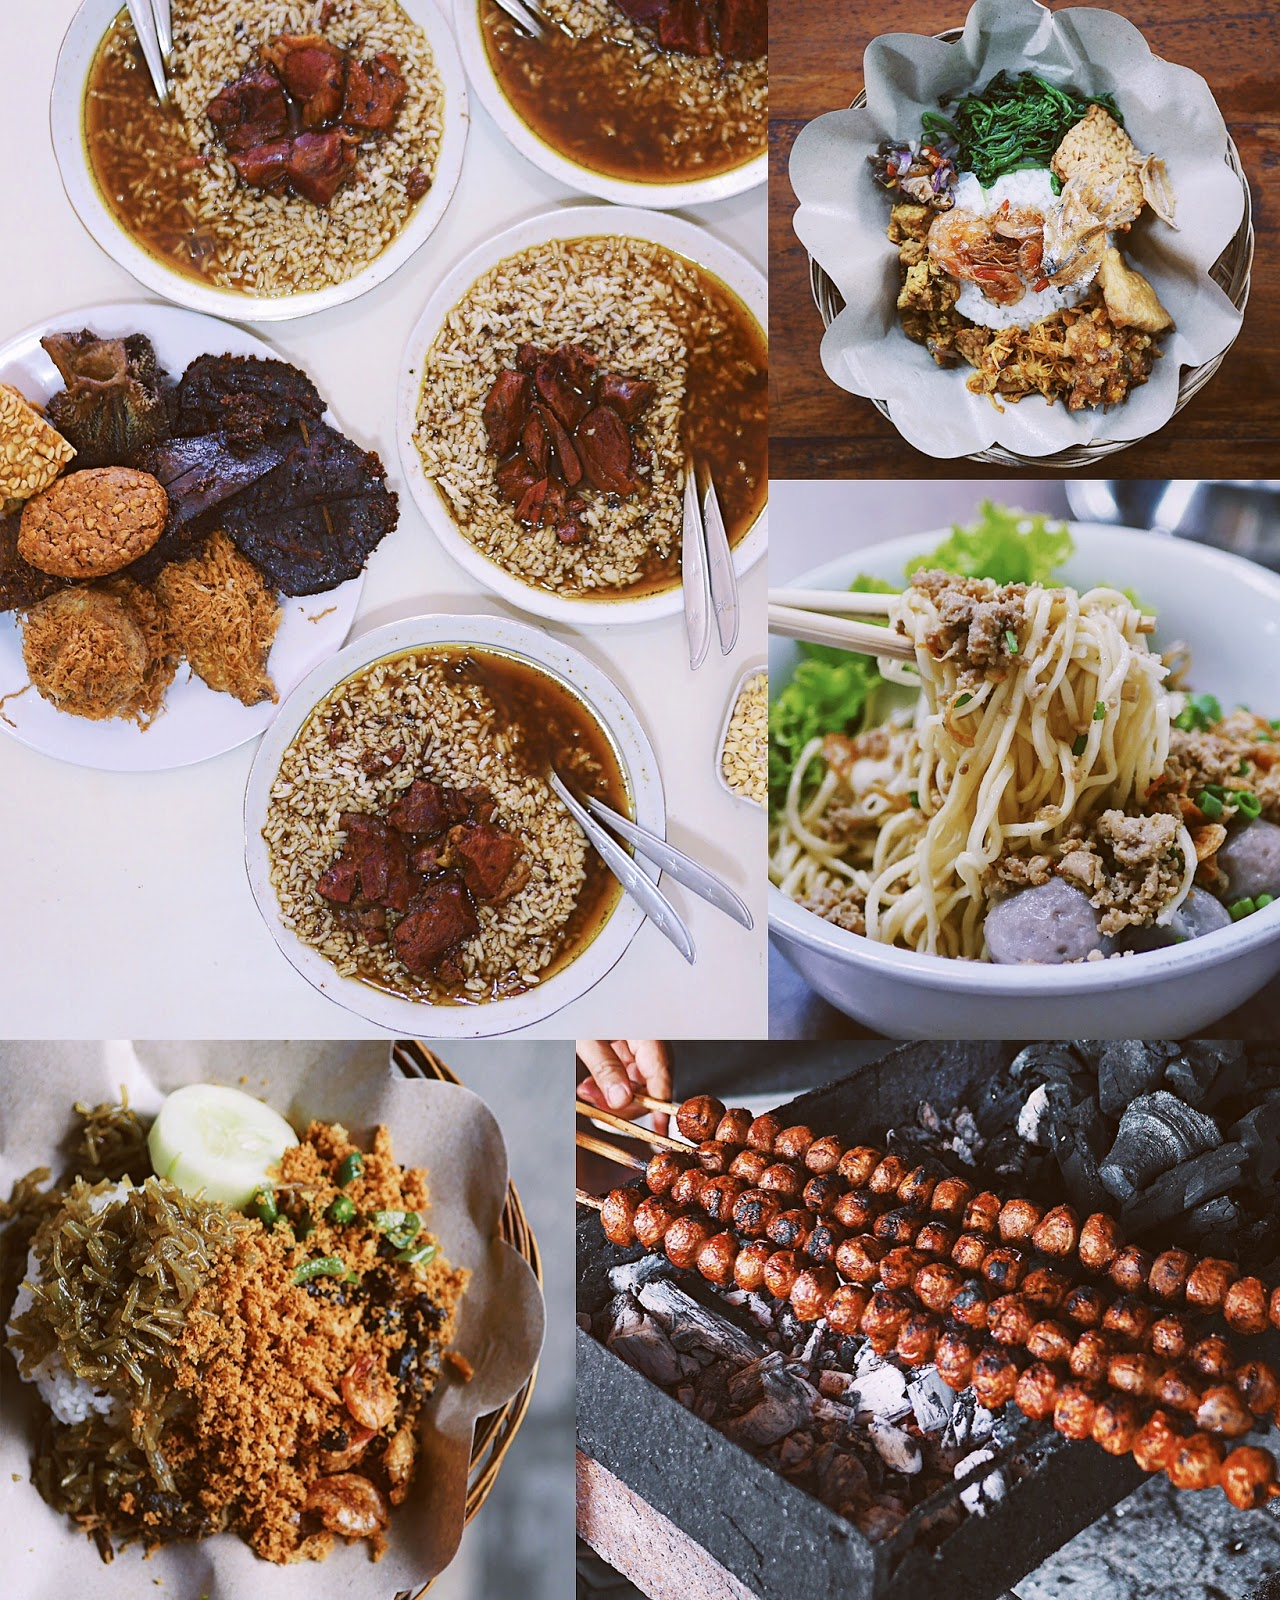 Lulabyspoon Indonesian Food Blogger Photographer What To Eat In Malang Batu